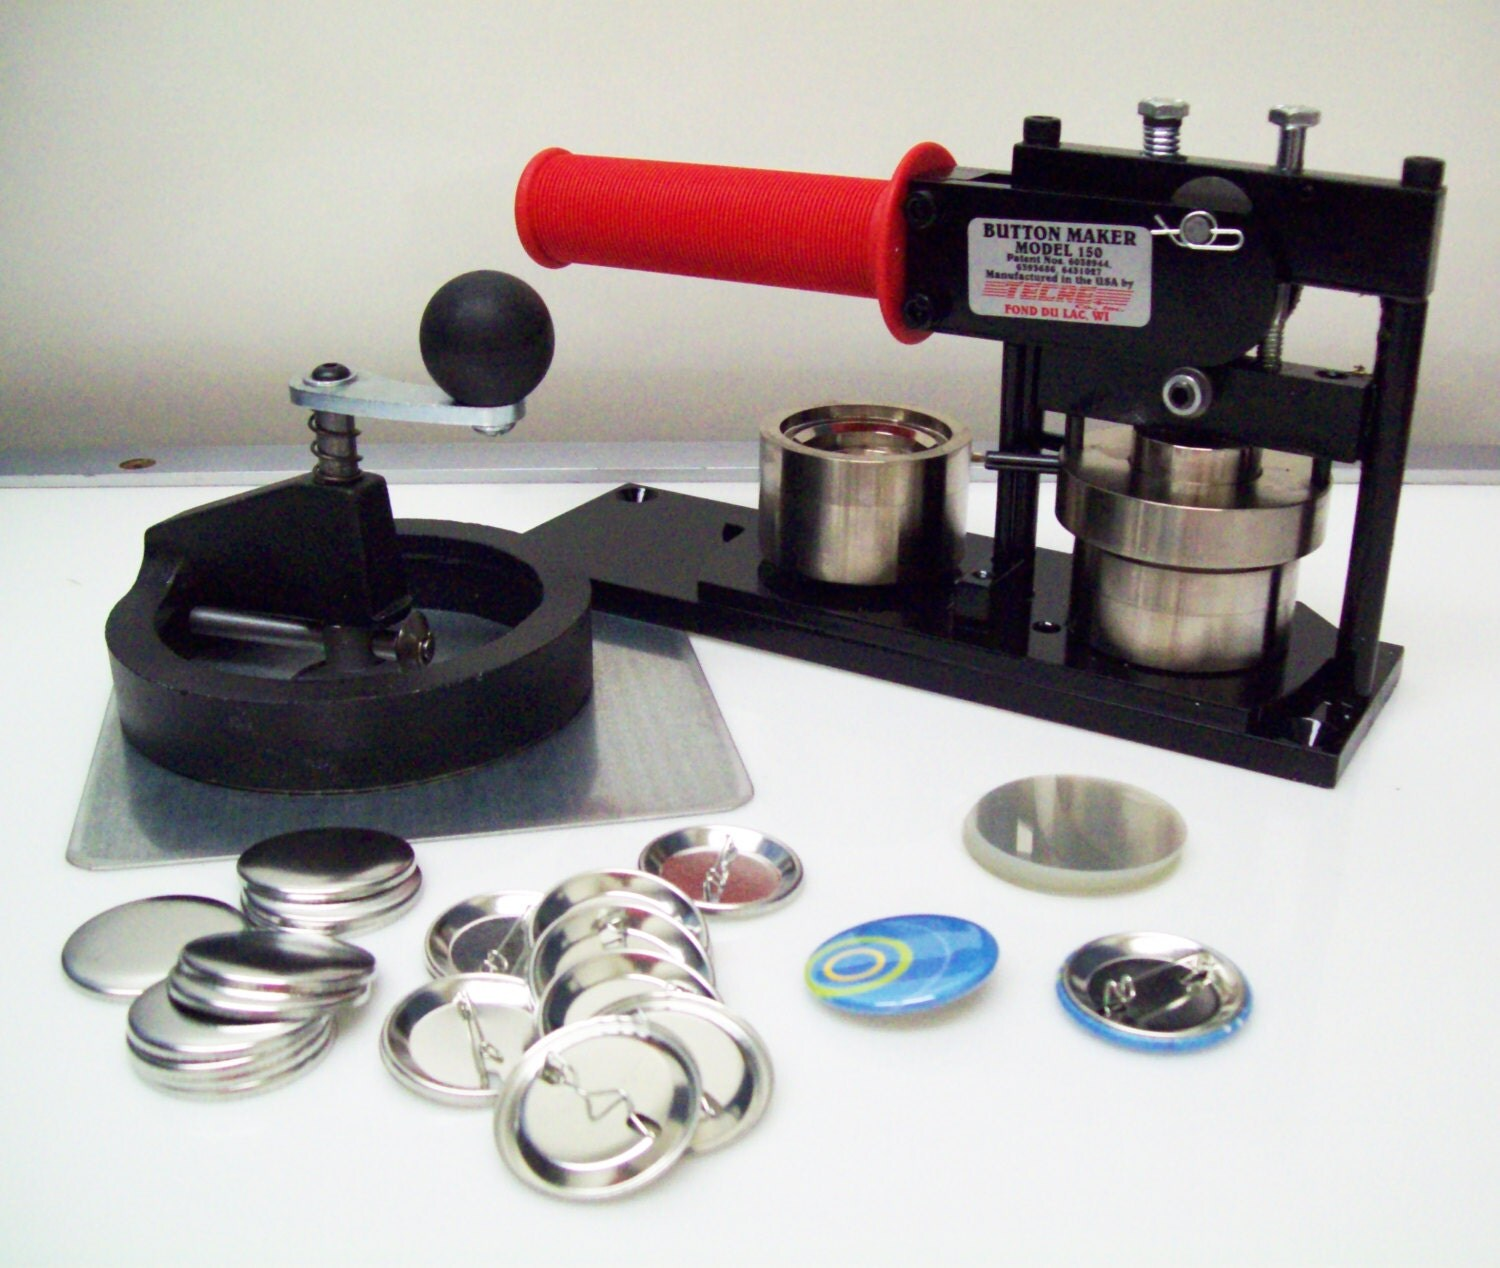 where can i buy a button maker machine